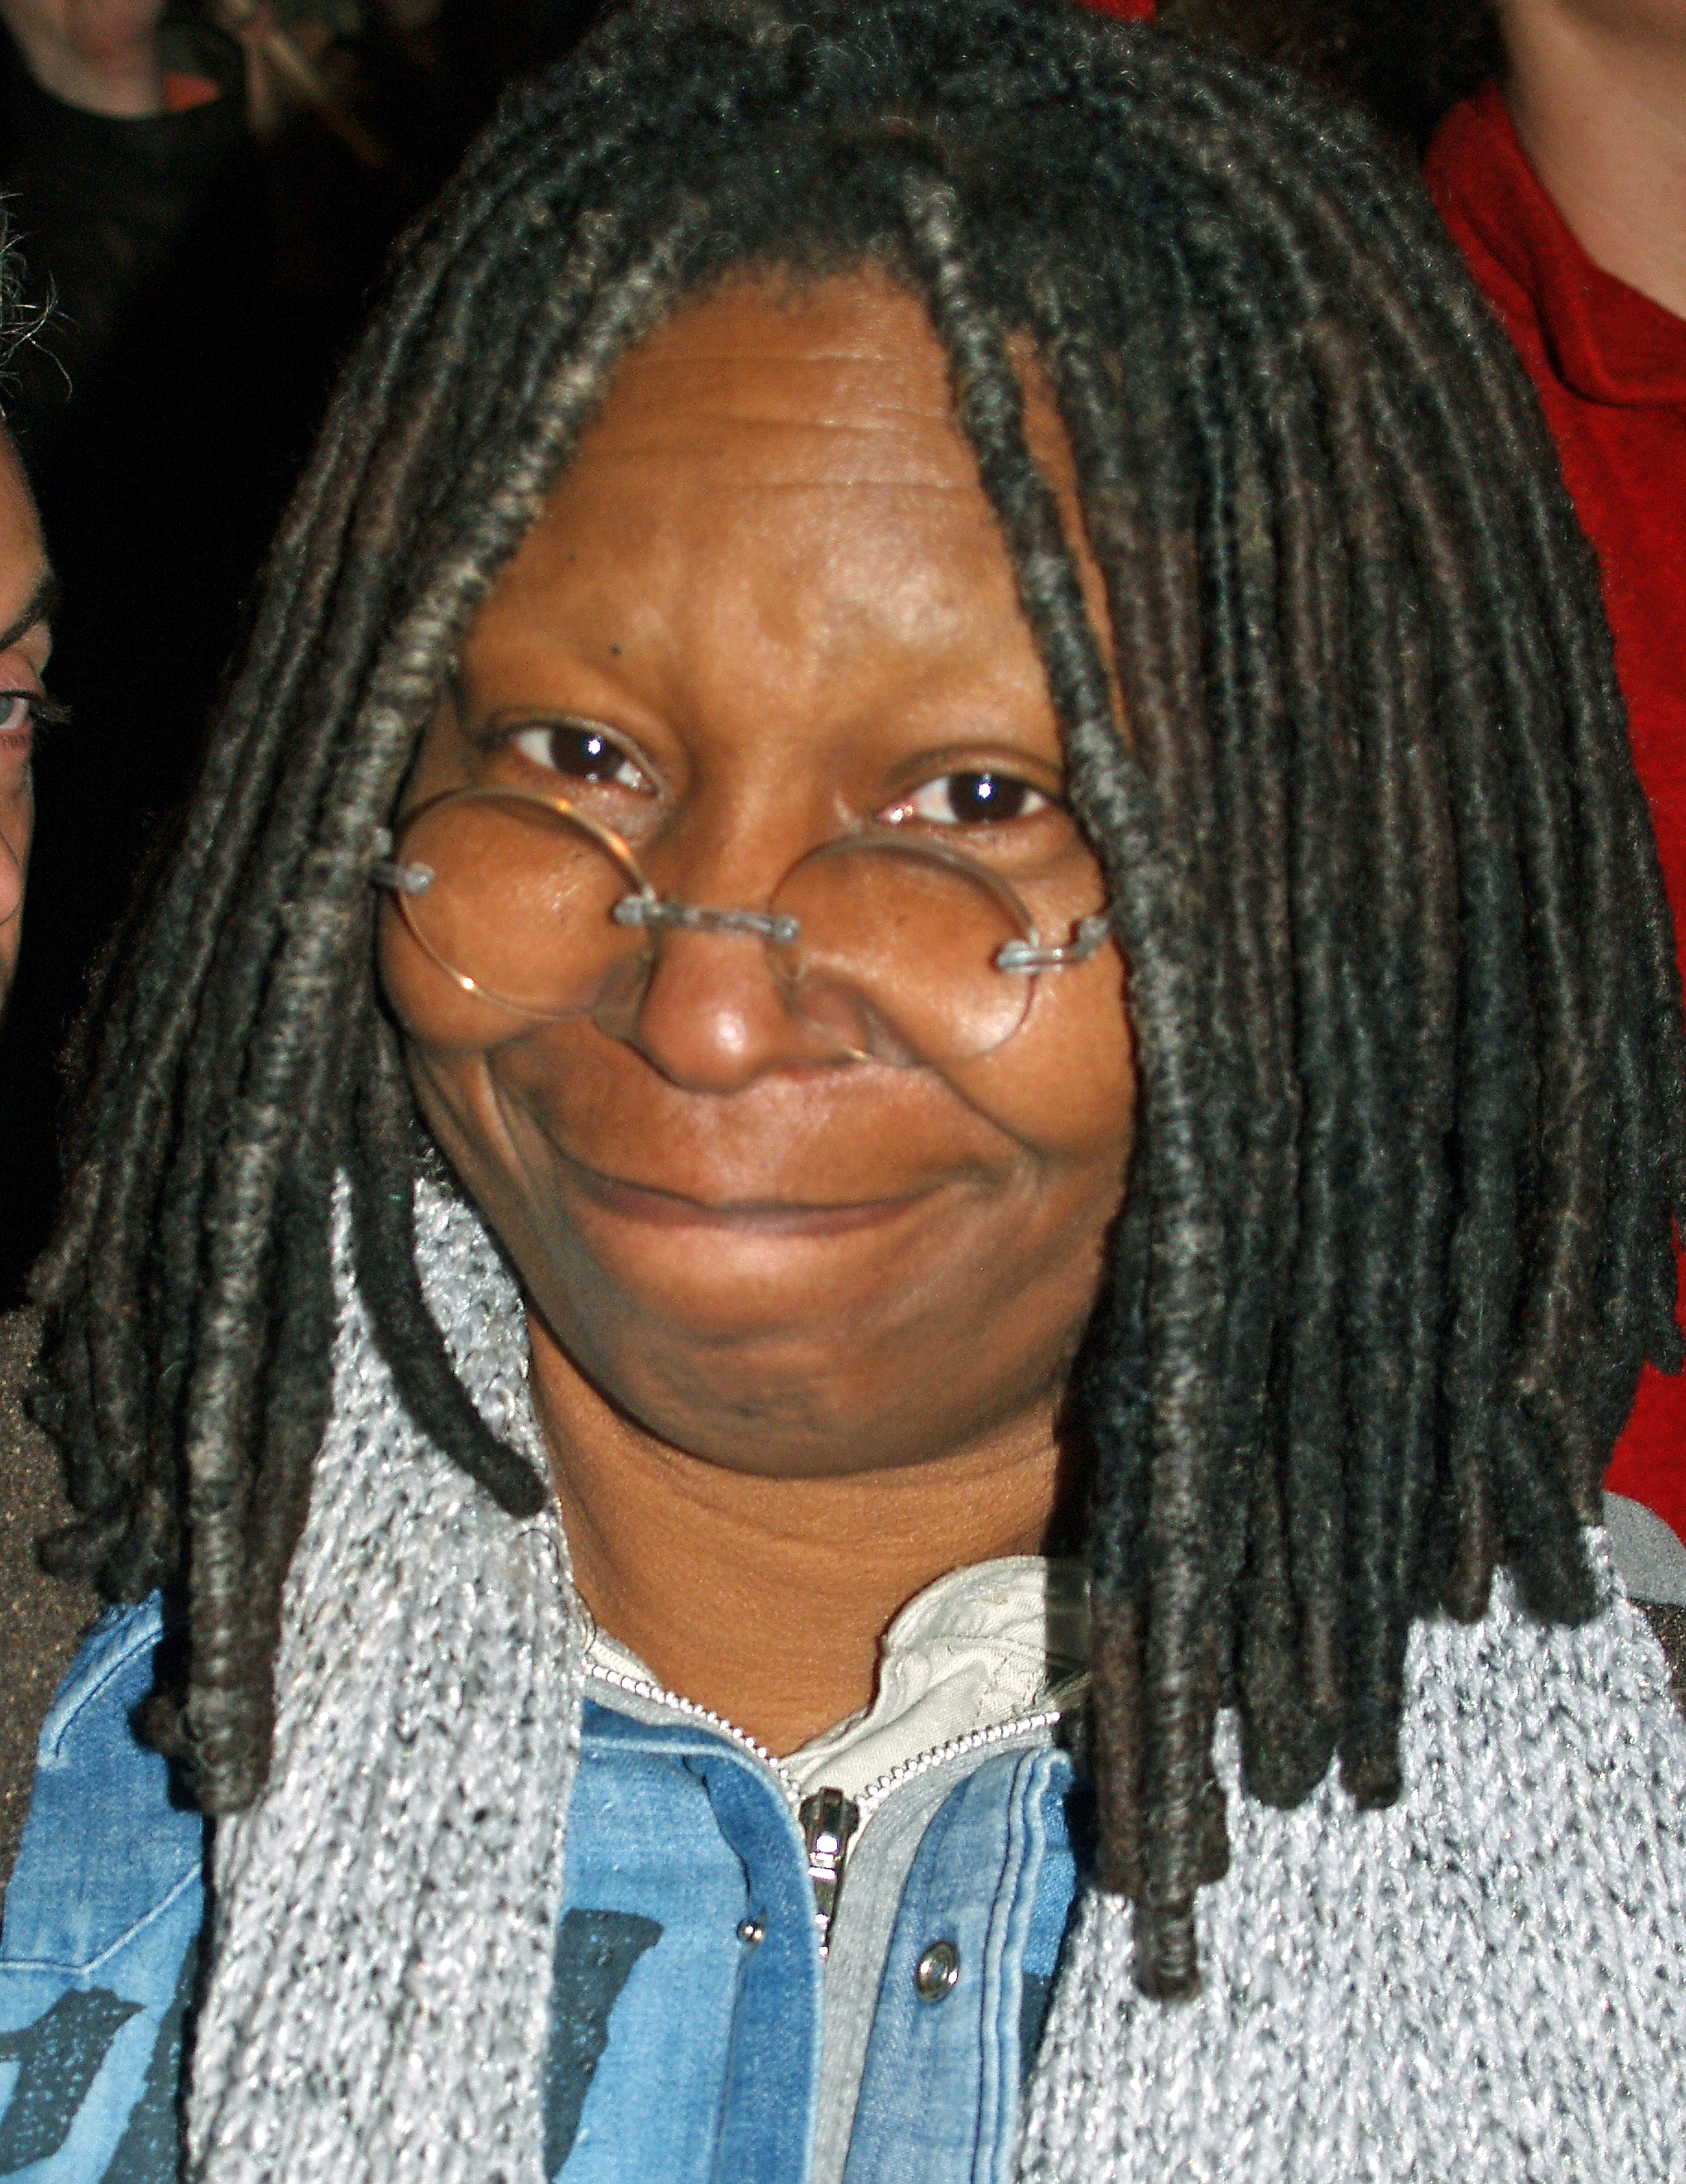 http://upload.wikimedia.org/wikipedia/commons/4/4b/Whoopi_Goldberg_at_a_NYC_No_on_Proposition_8_Rally.jpg